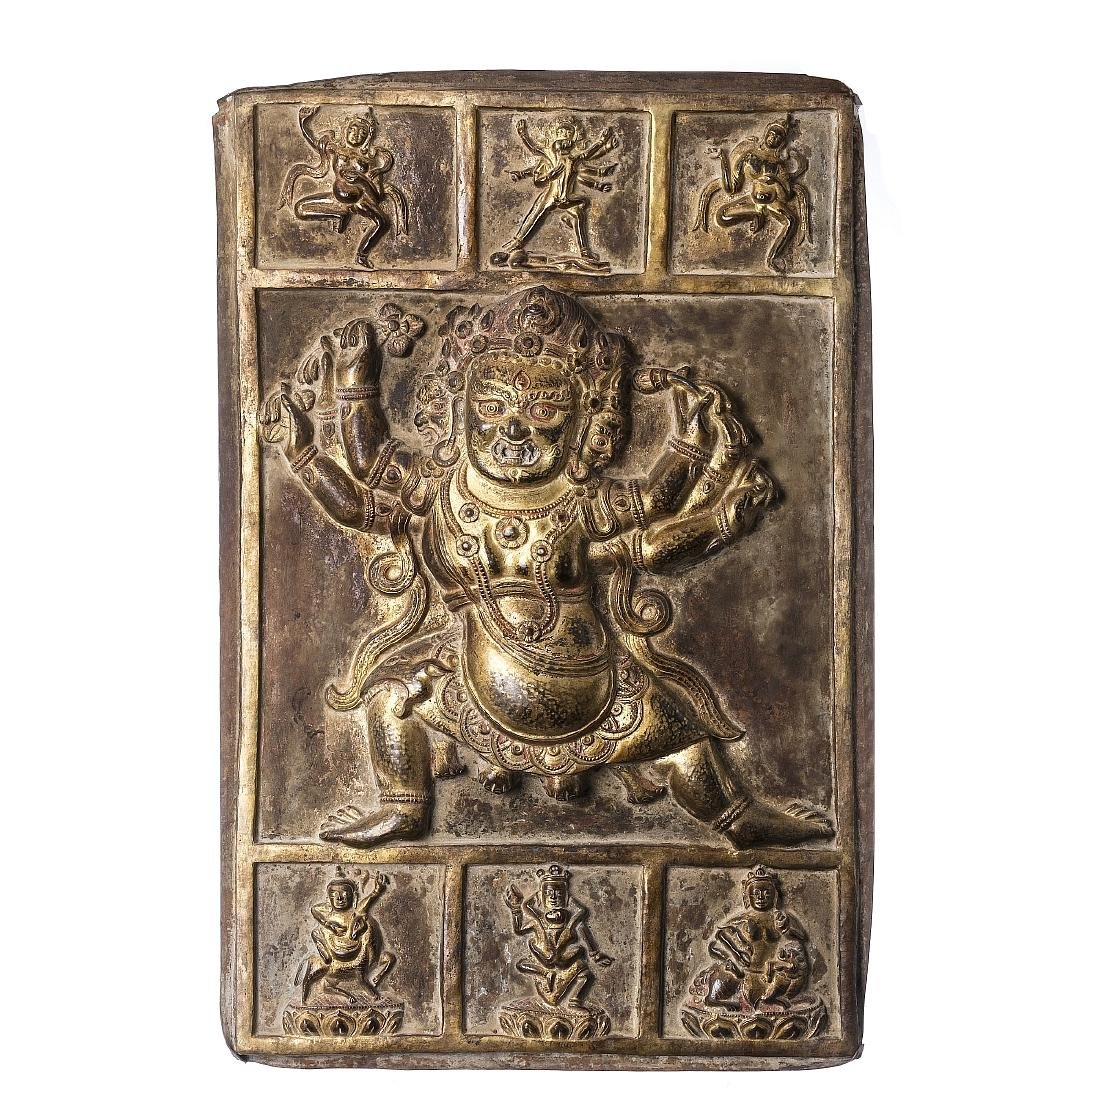 Tibetan Mahakala plaque in golden copper